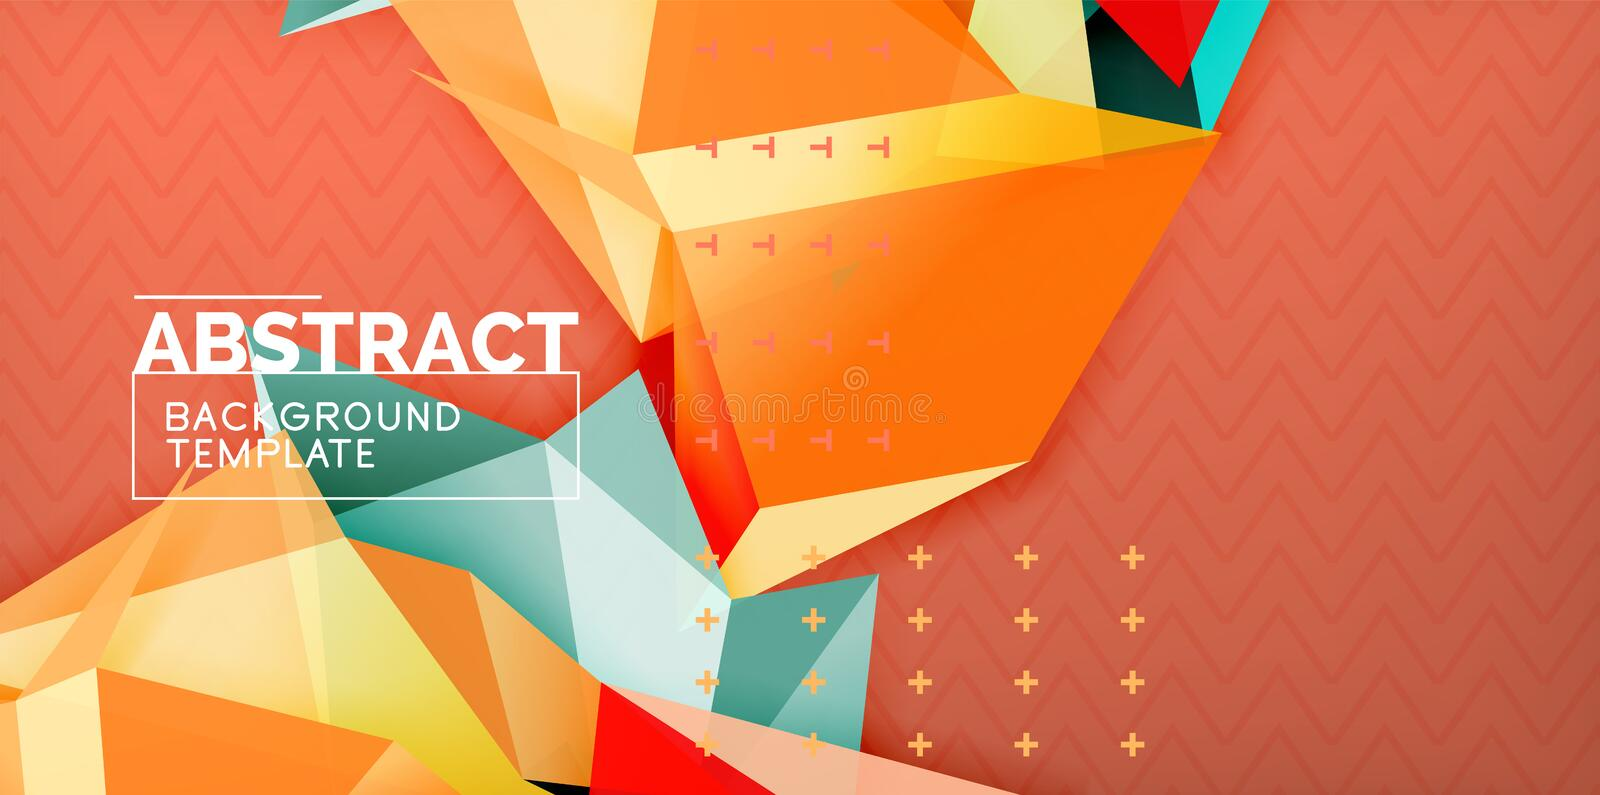 Low poly design 3d triangular shape background, mosaic abstract design template stock illustration